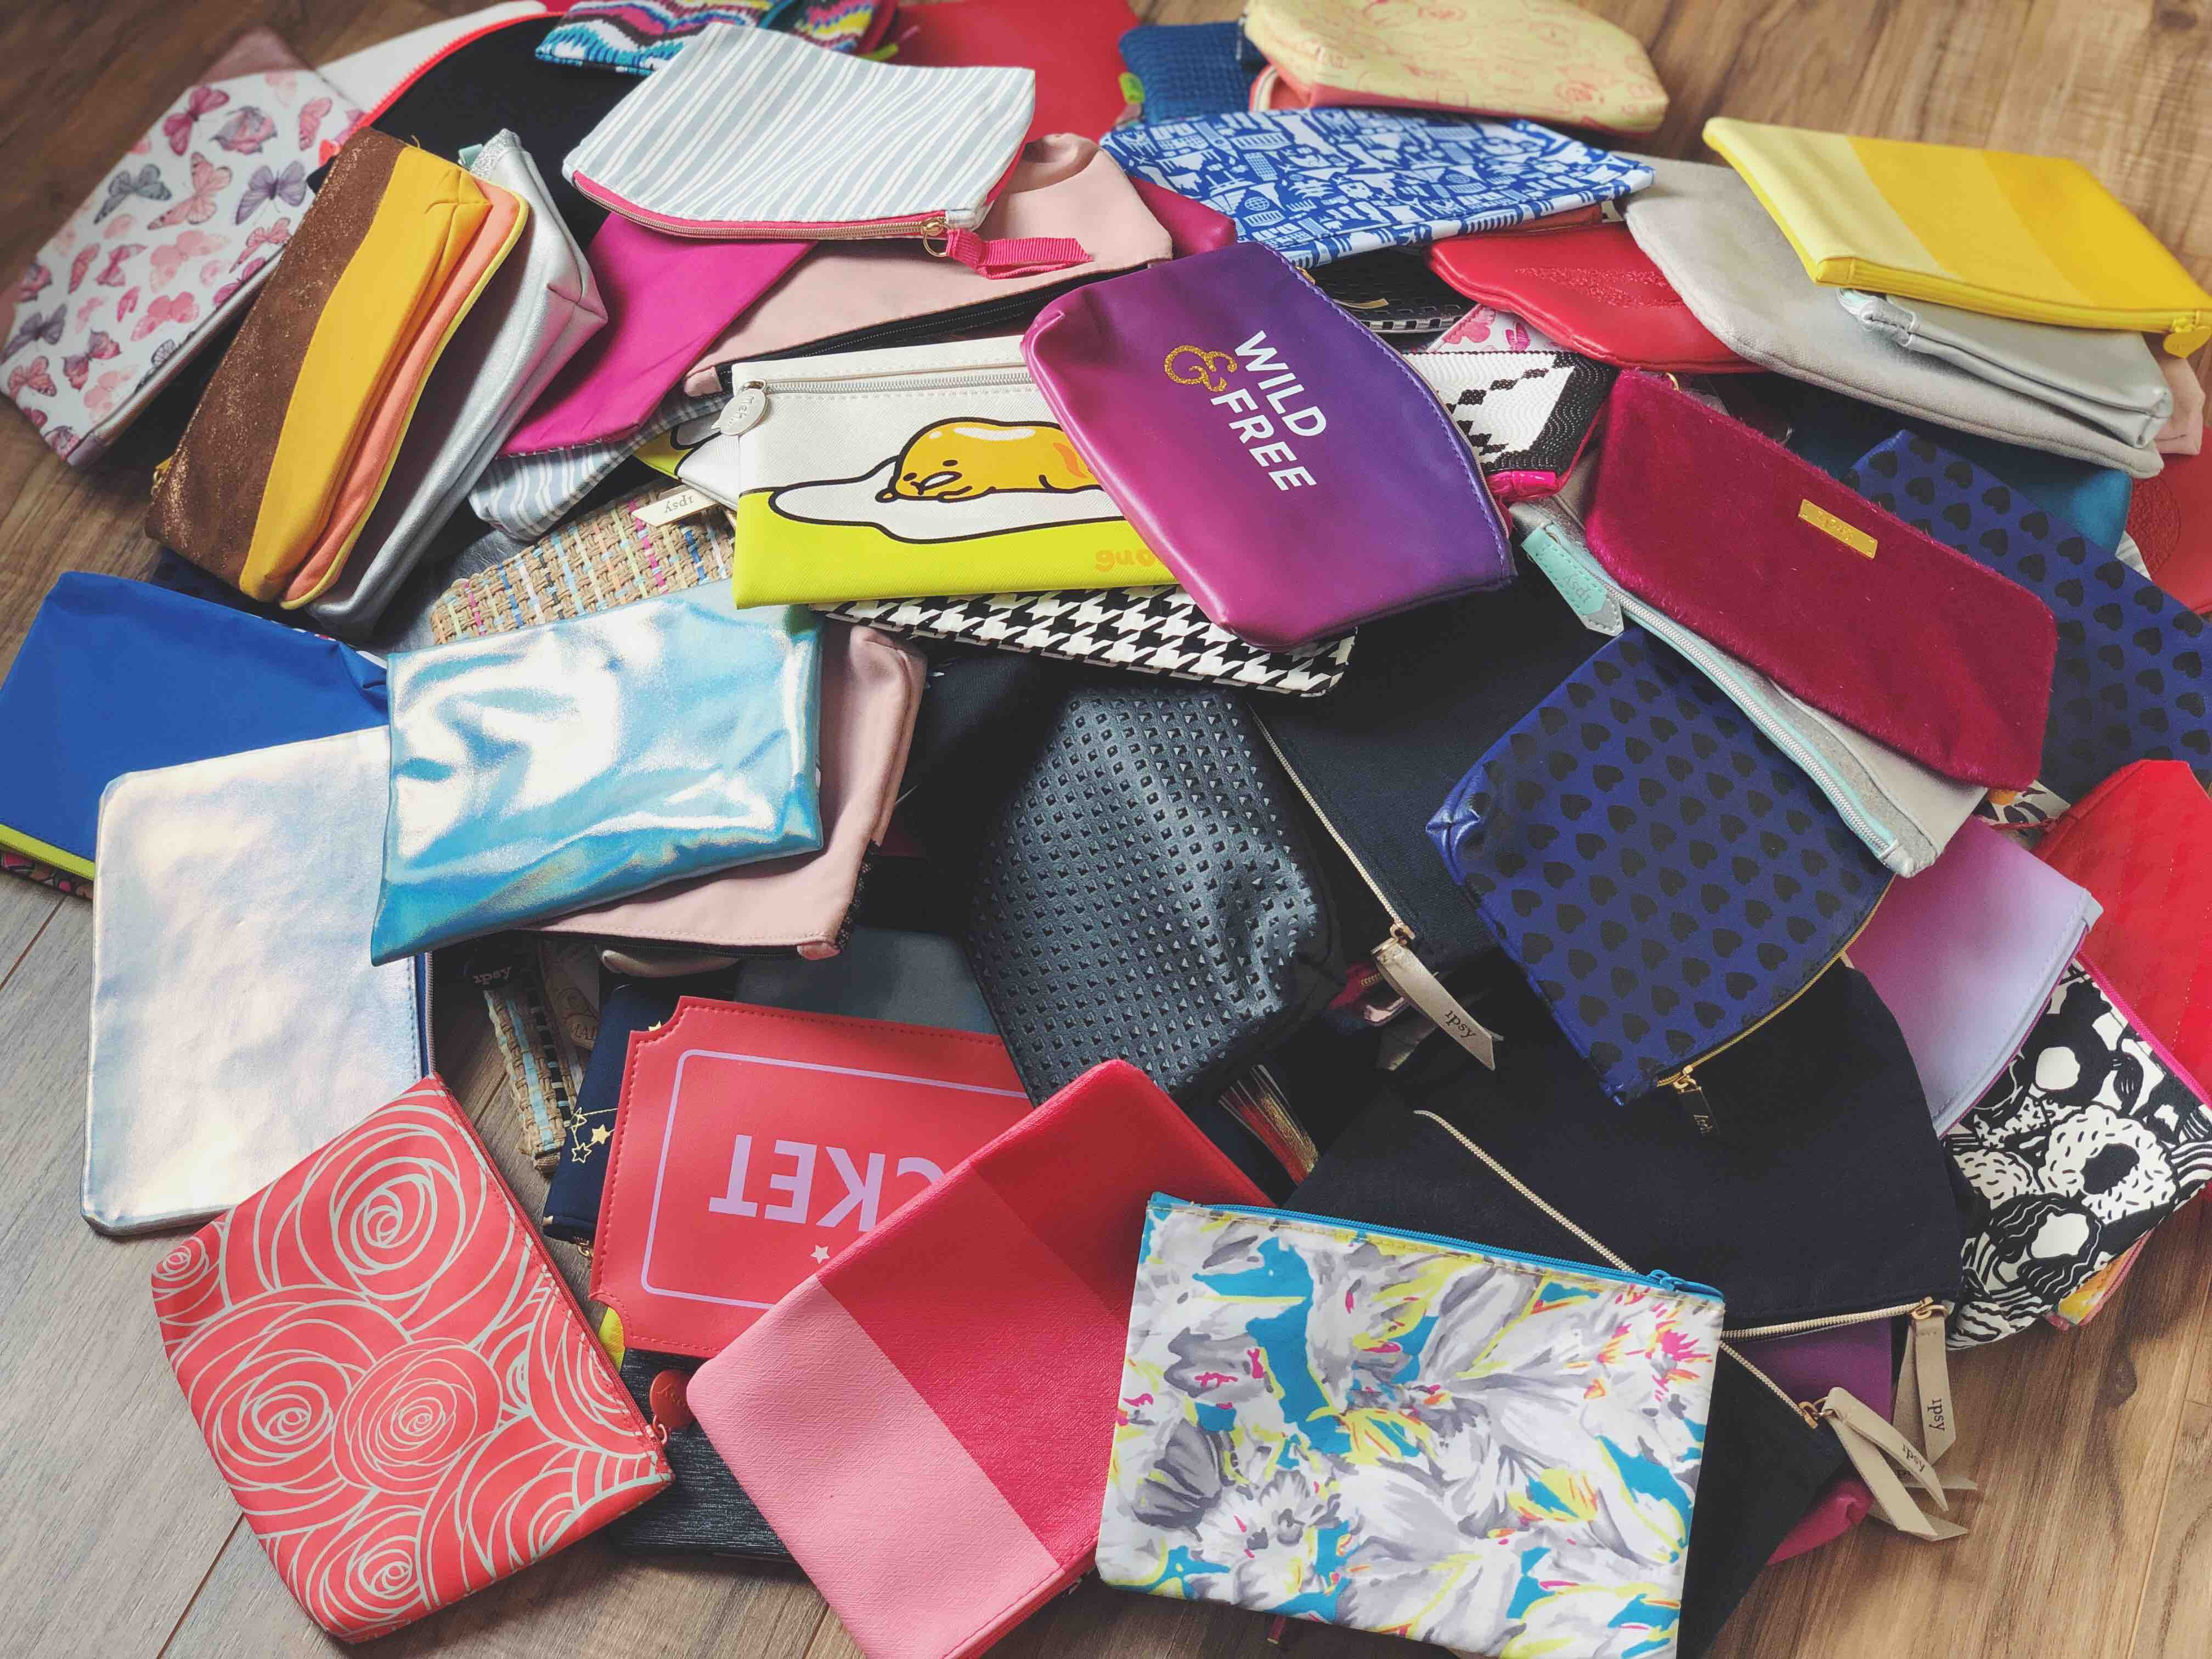 Fundraiser by Amber Pollock : Ipsy Giveback Bags - End Period Poverty